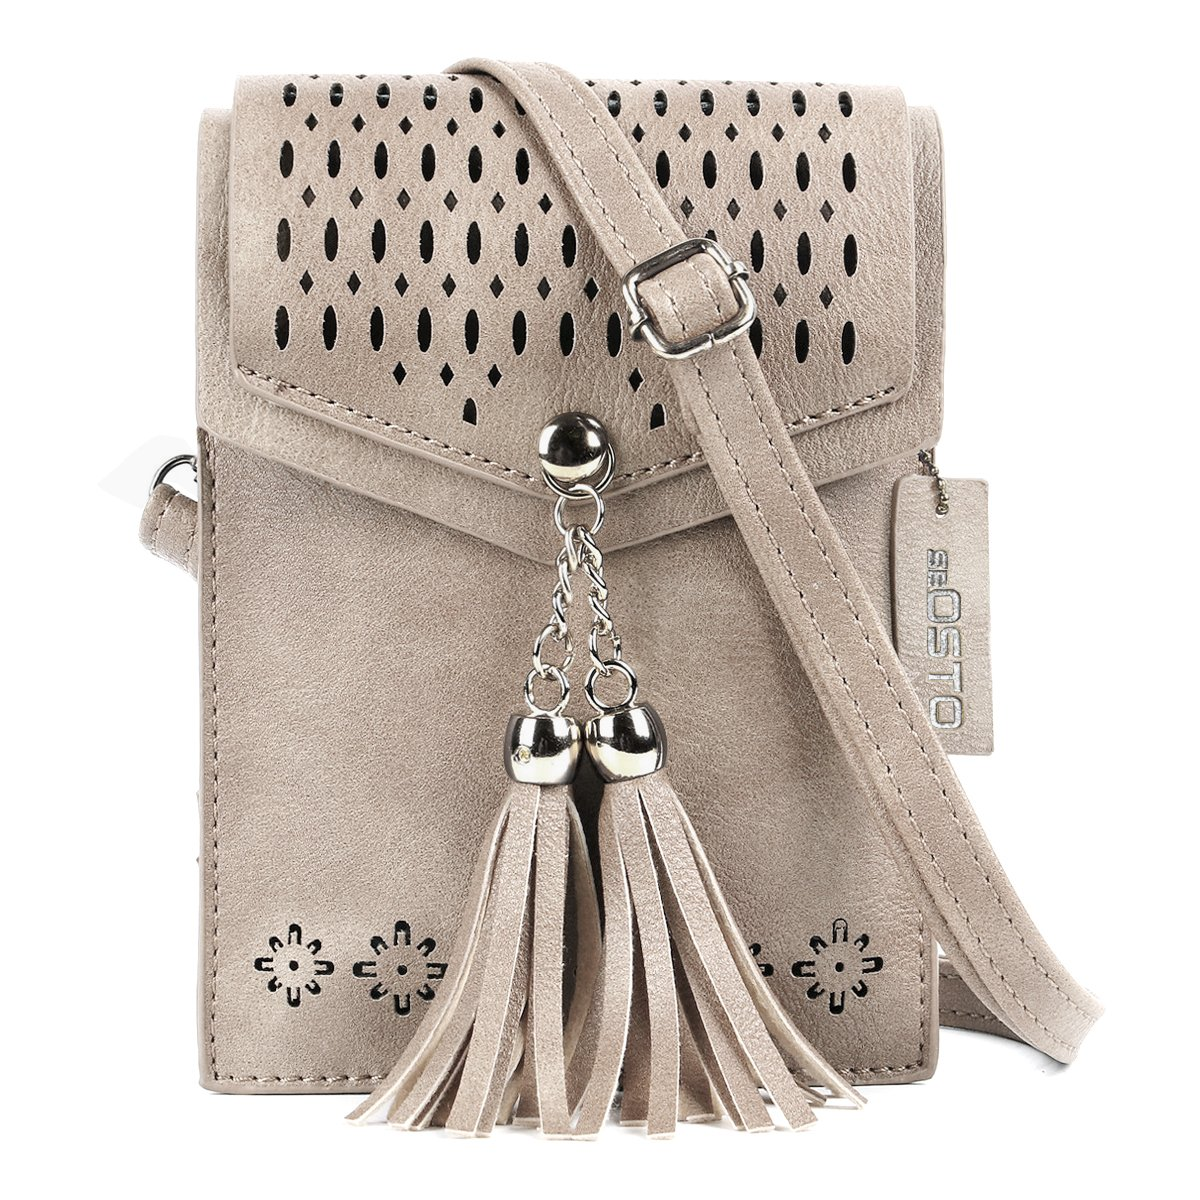 Women Small Crossbody Bag, seOSTO Tassel Cell Phone Purse Wallet Bags (Beige) …